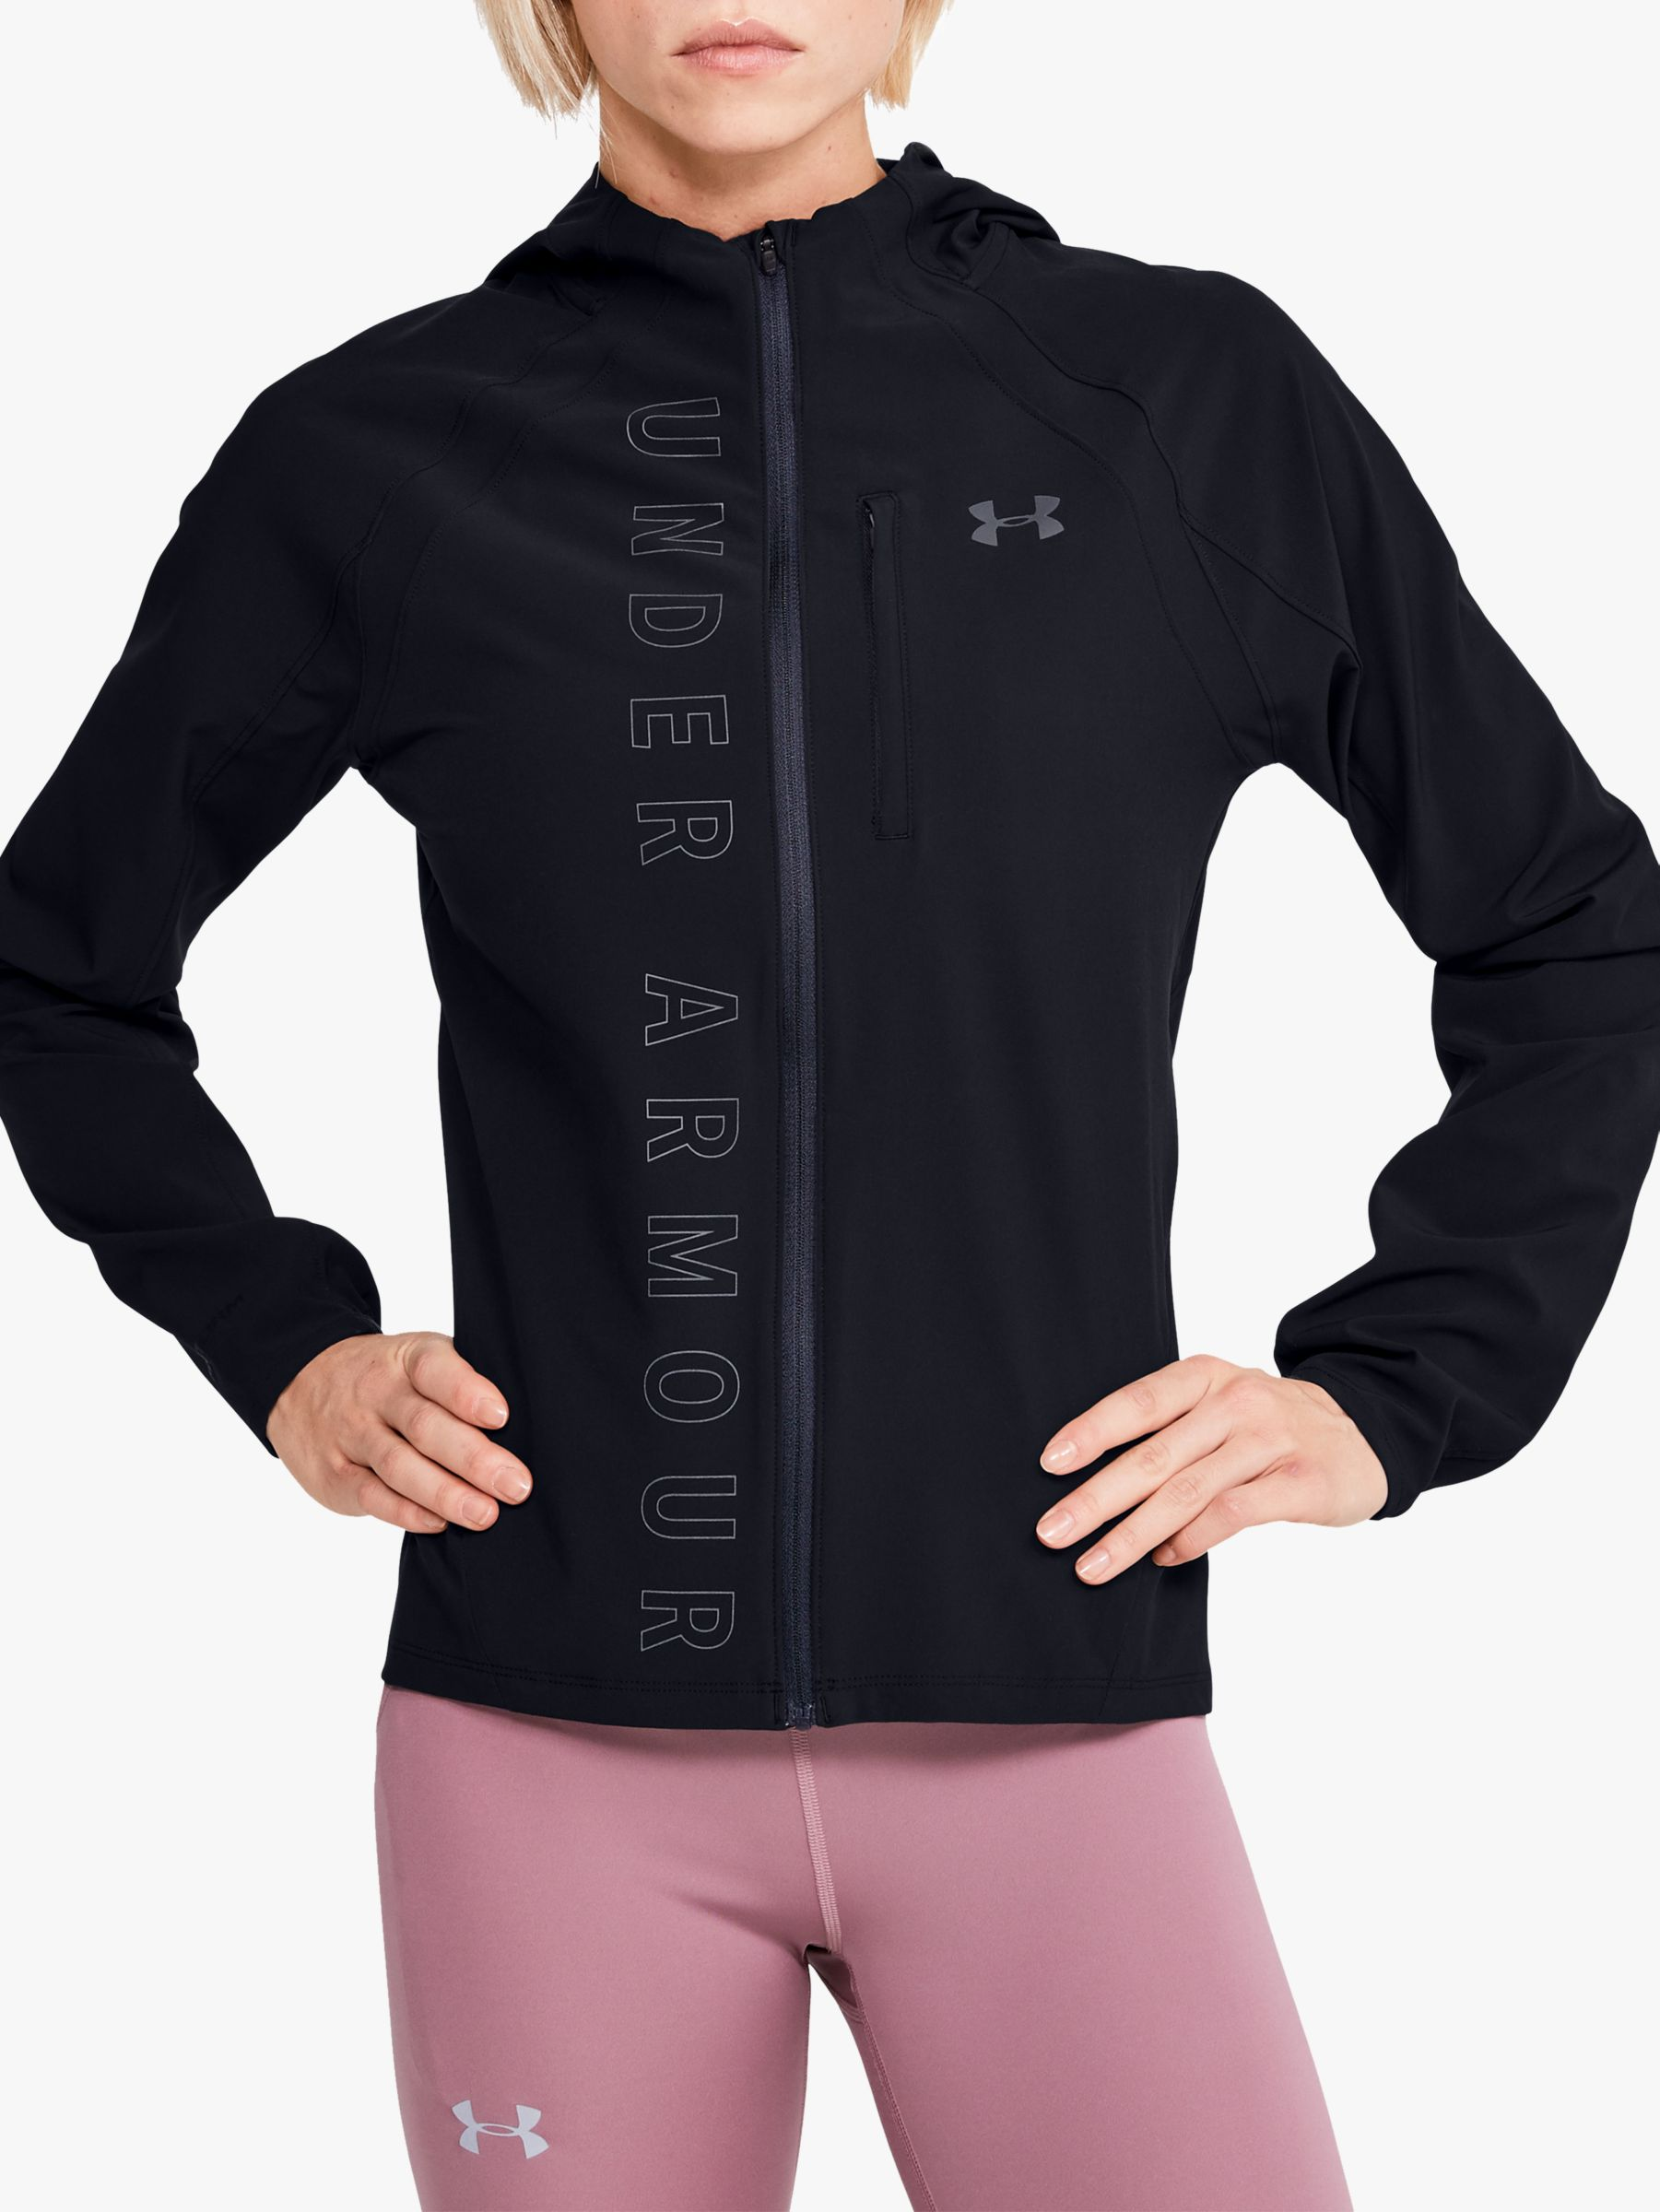 Under Armour Under Armour Qualifier Outrun The Storm Women's Running Jacket, Black